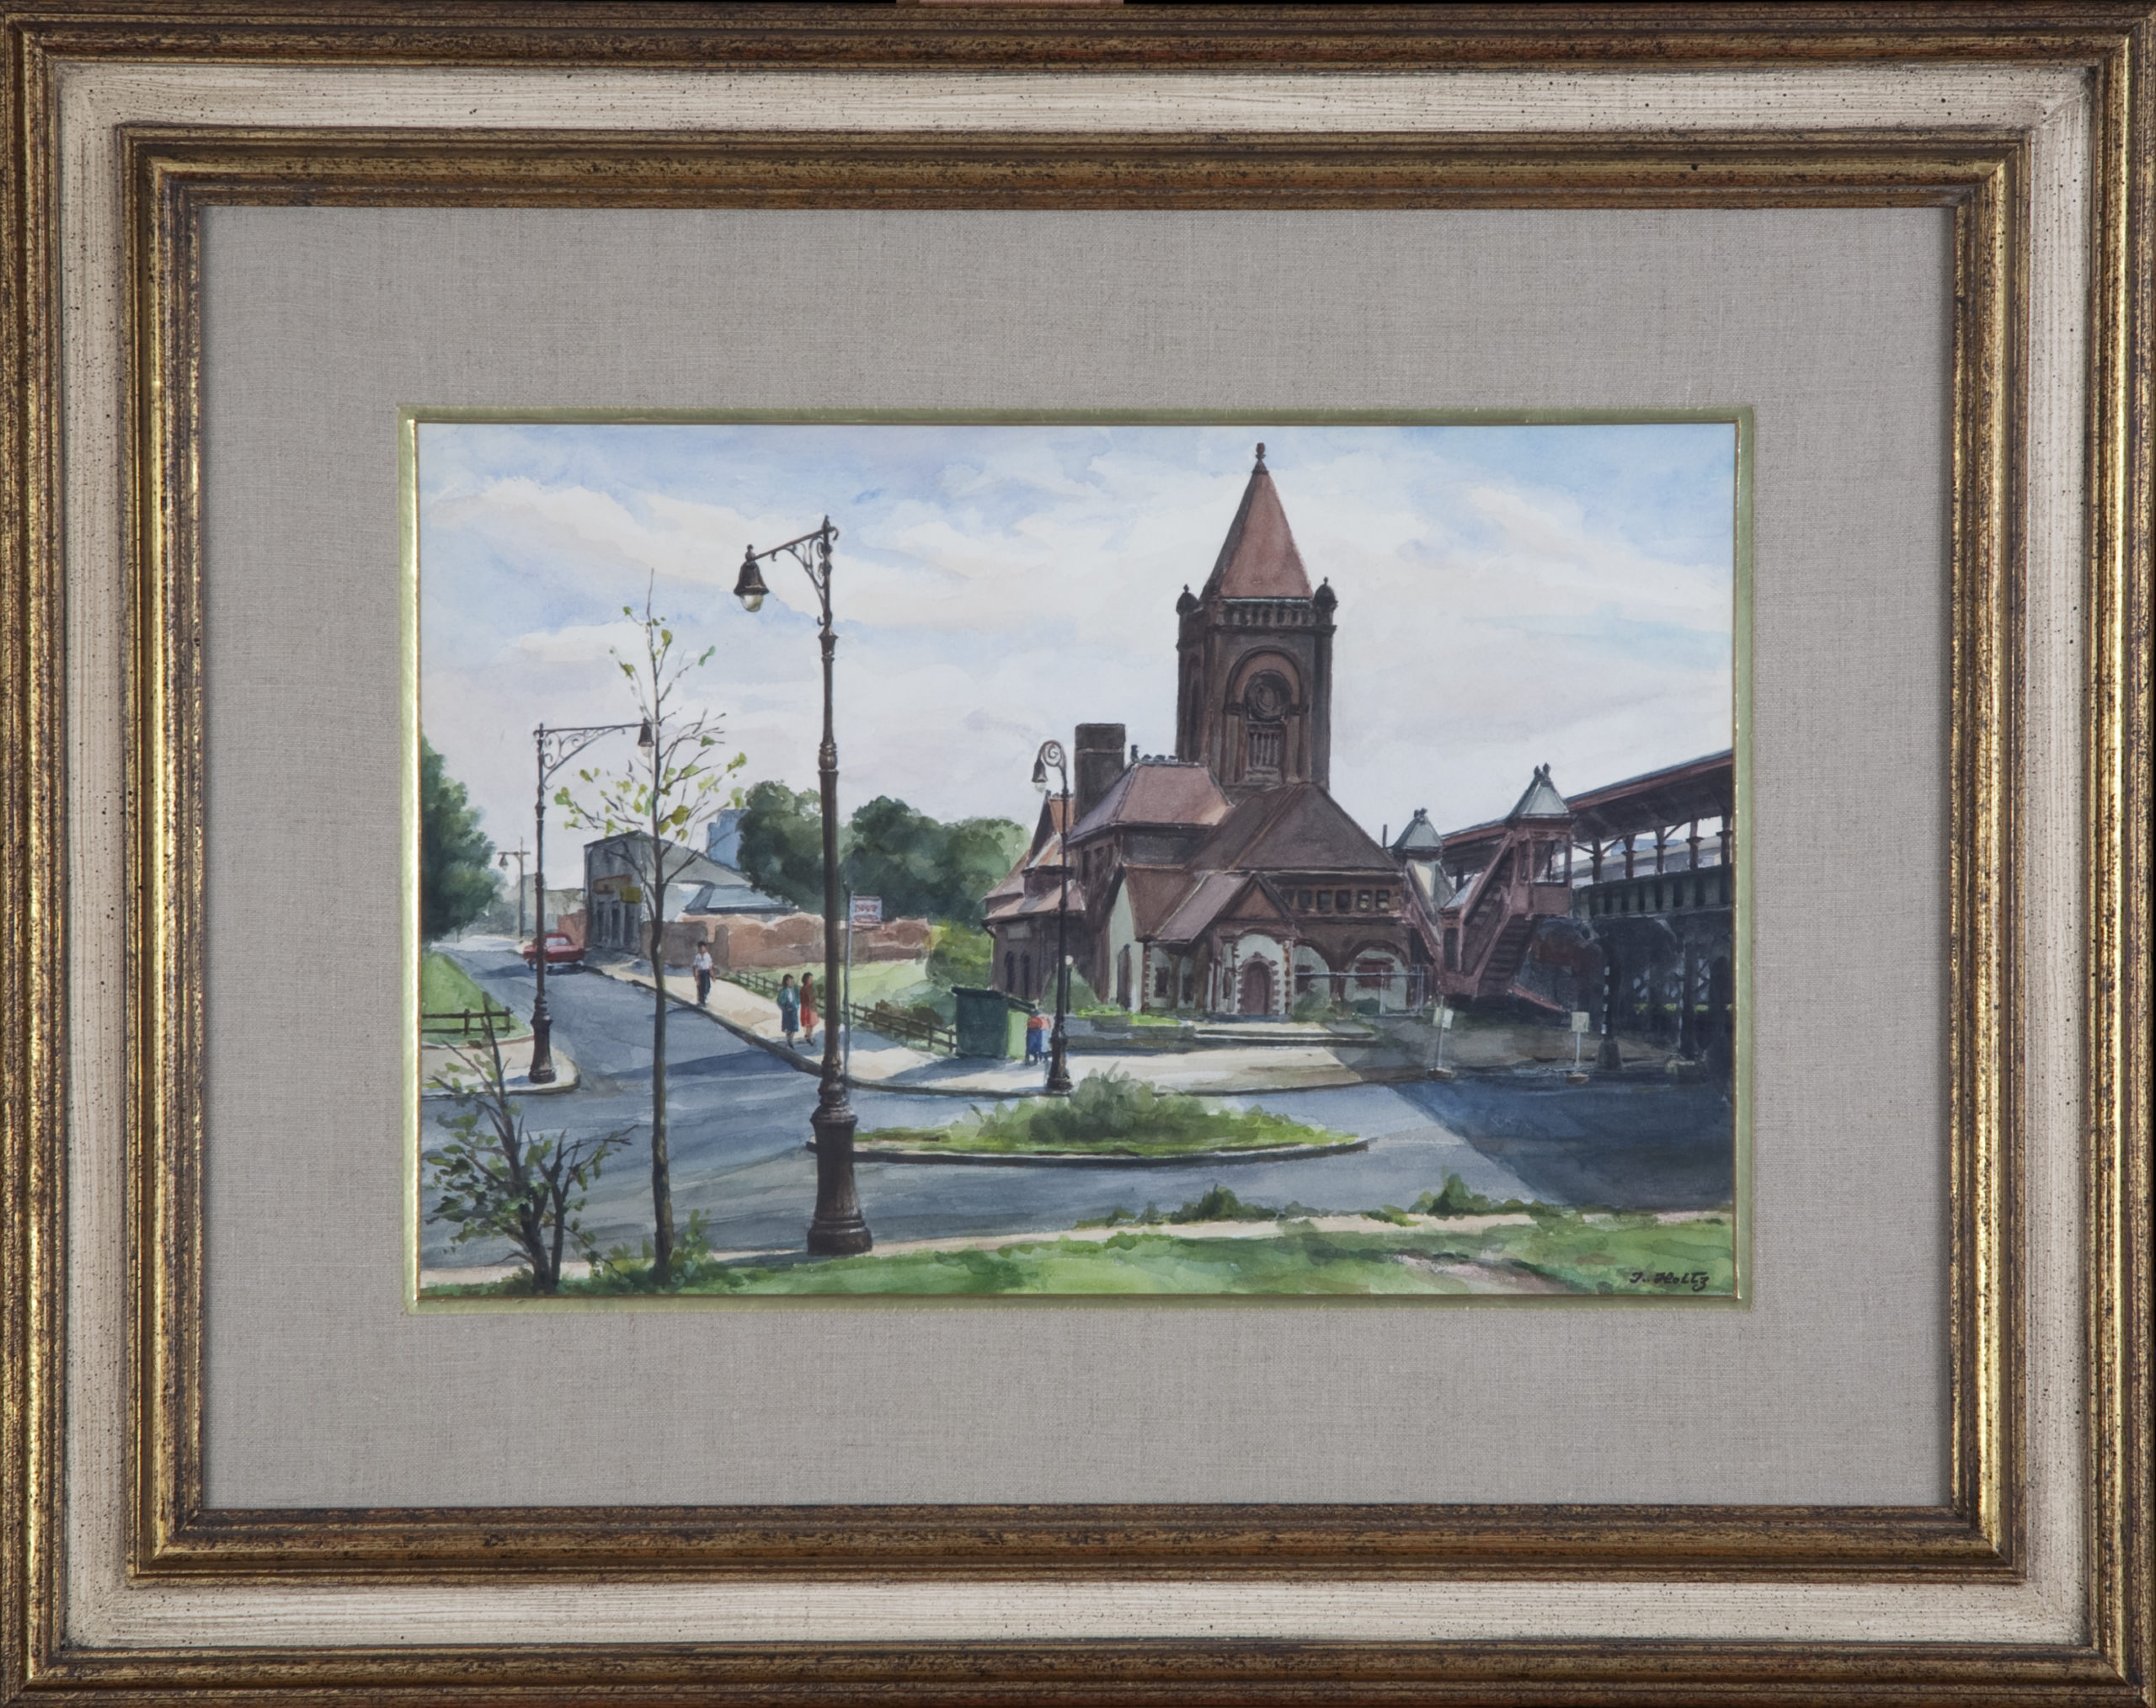 237 Old Railroad Station 1960 - Watercolor - 18 x 12 - Frame: 29 x 23 x 1.25